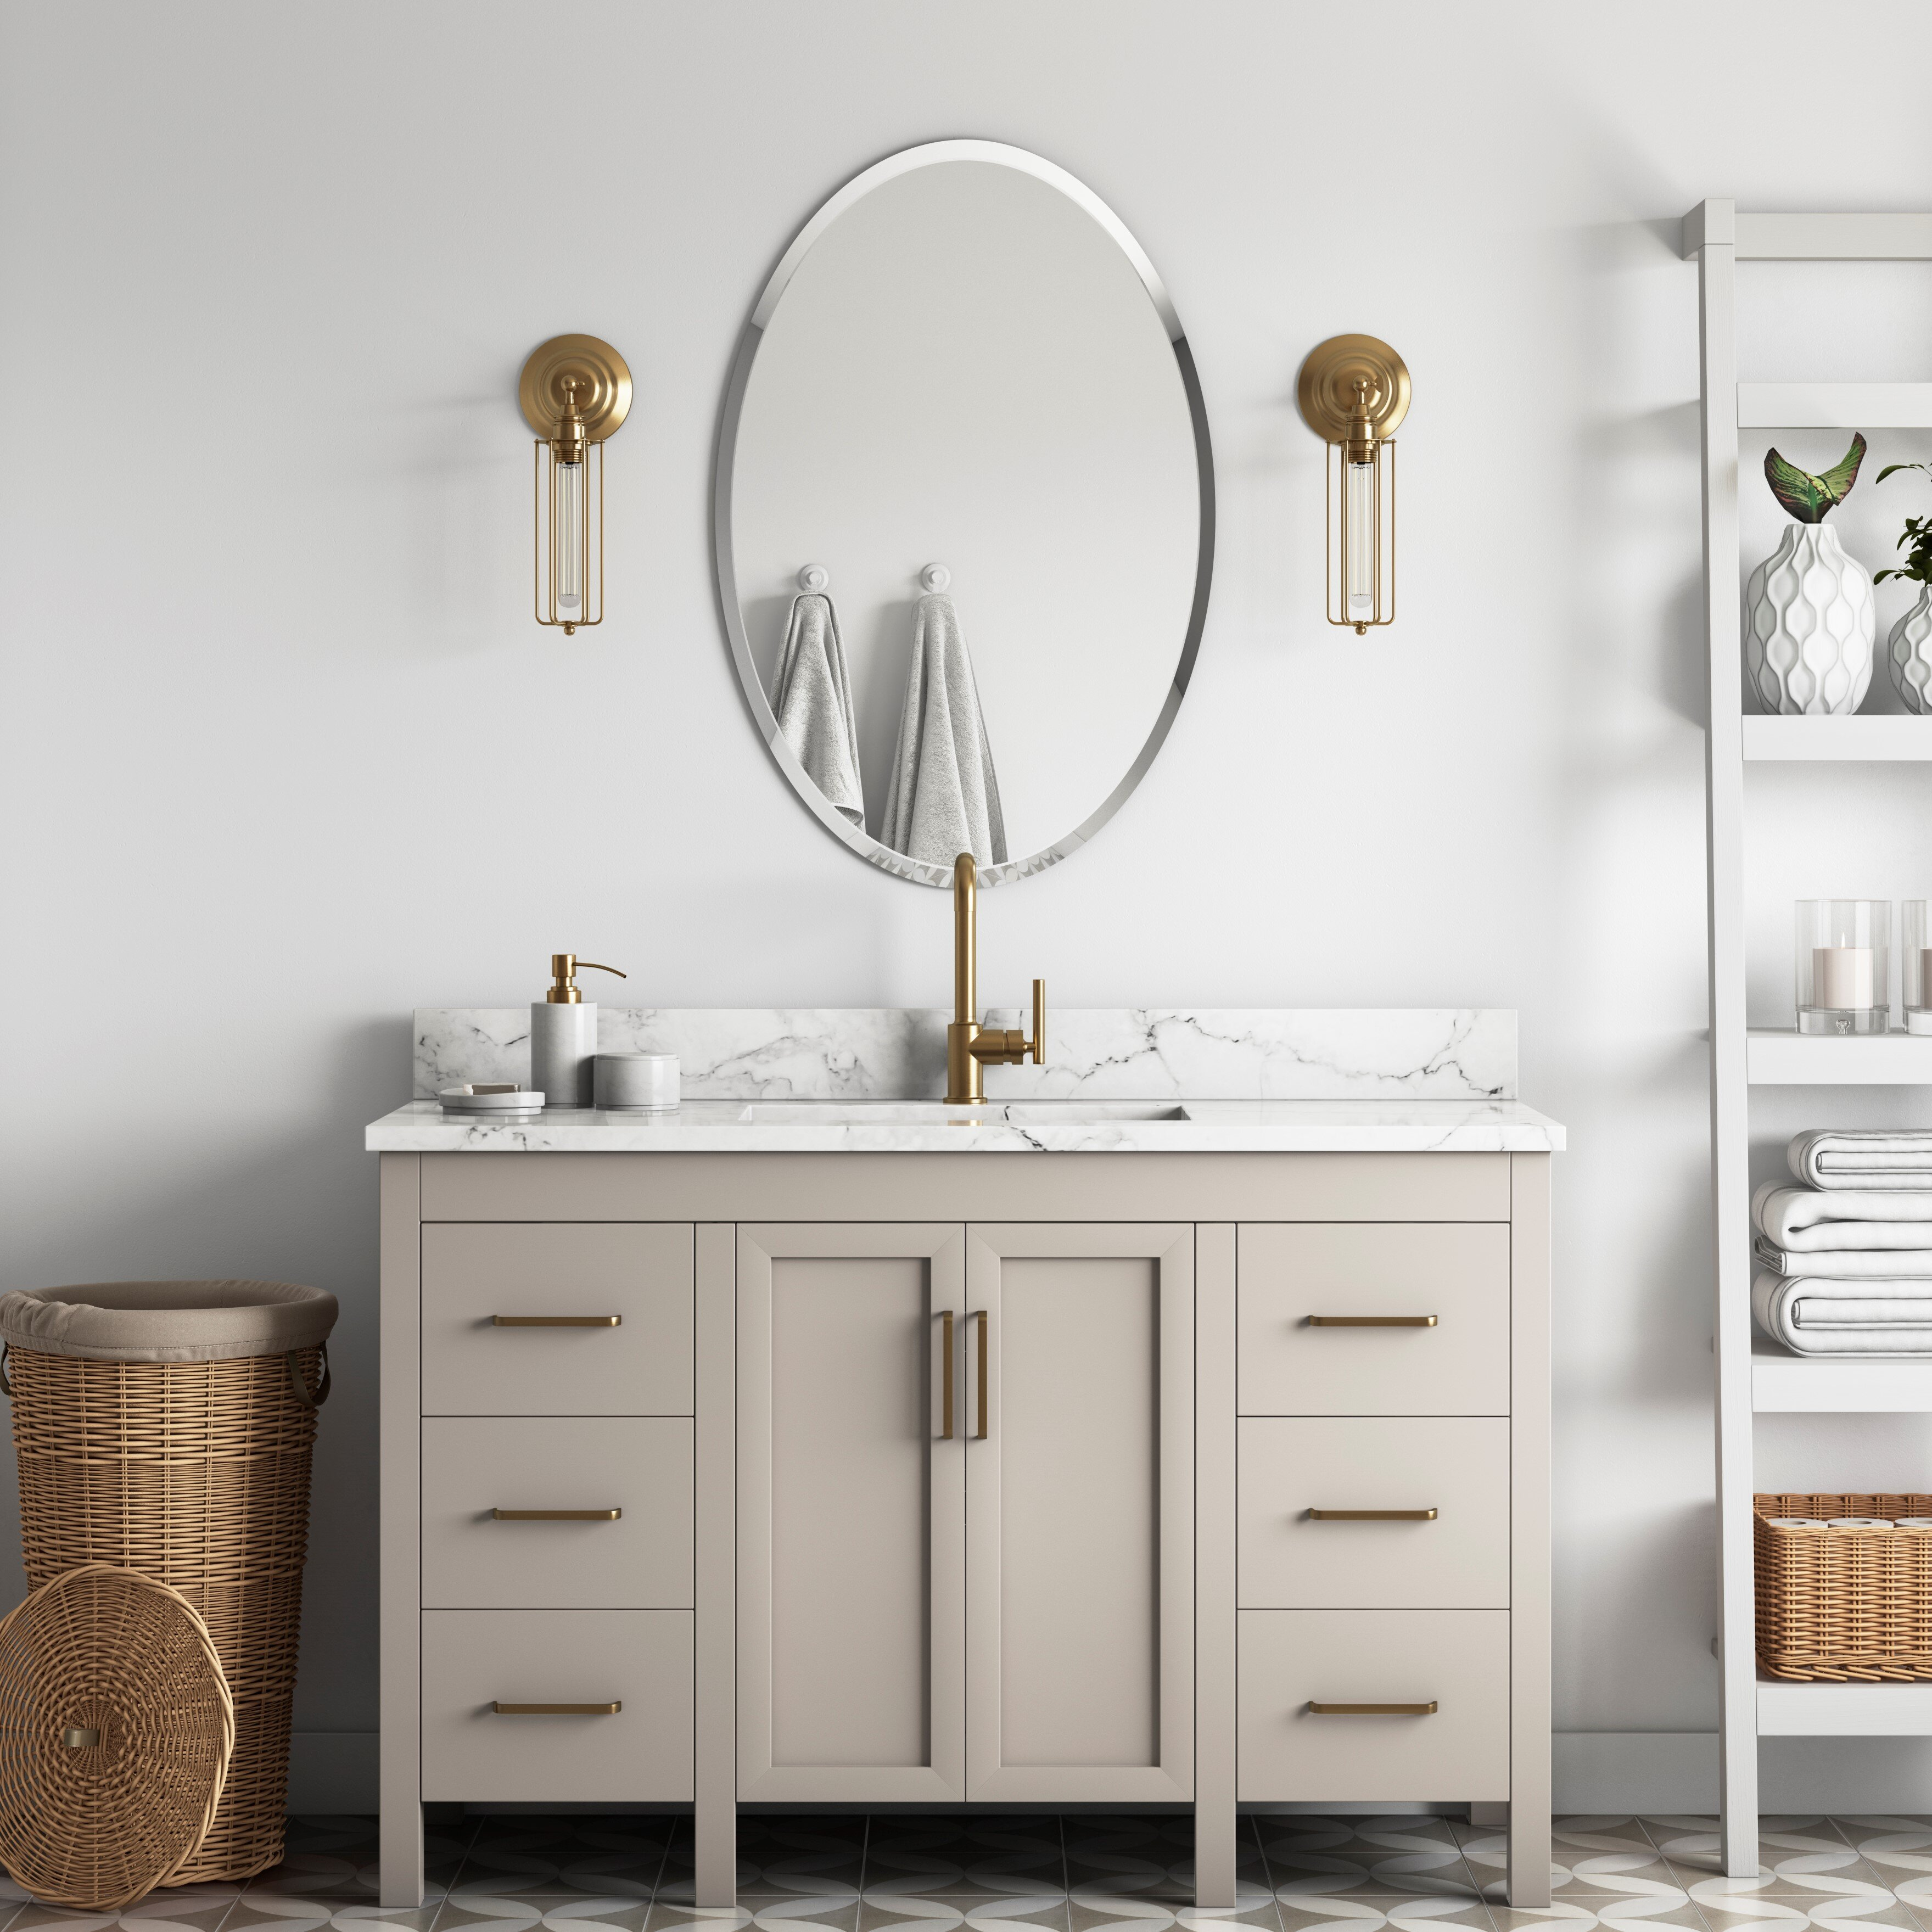 Large Oversized Oval Vanity Mirrors You Ll Love In 2021 Wayfair